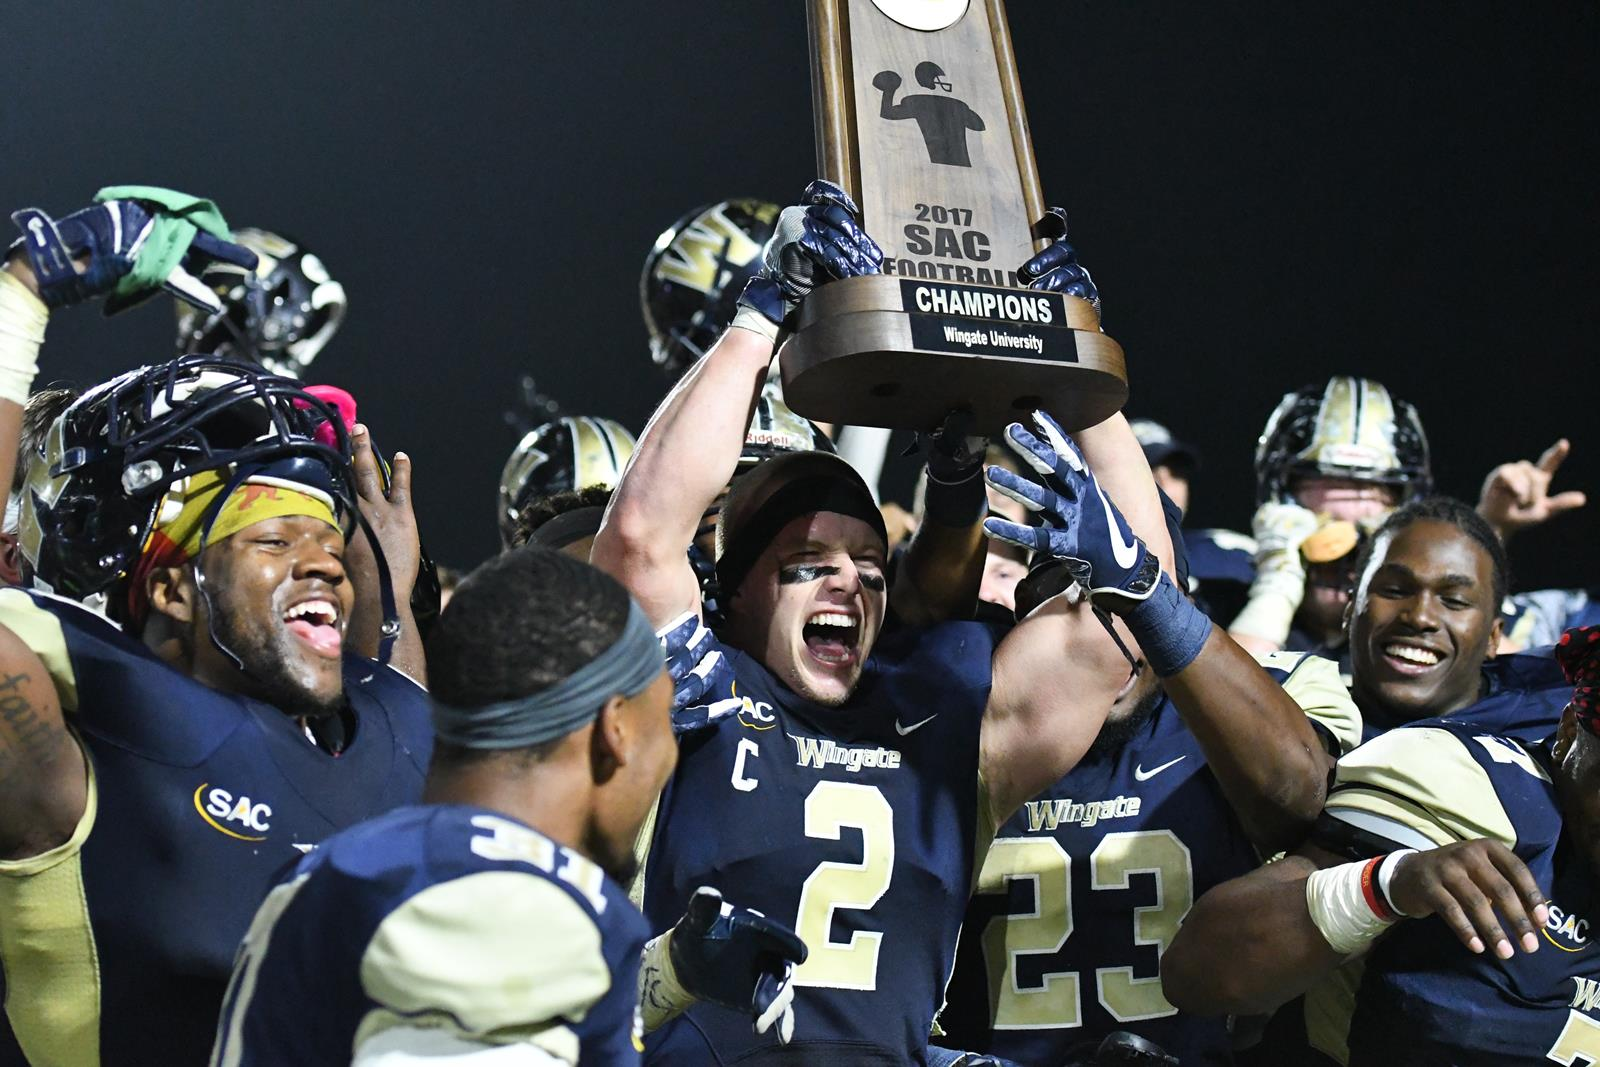 Champs Wingate Claims Outright Sac Title With 44 20 Victory Over